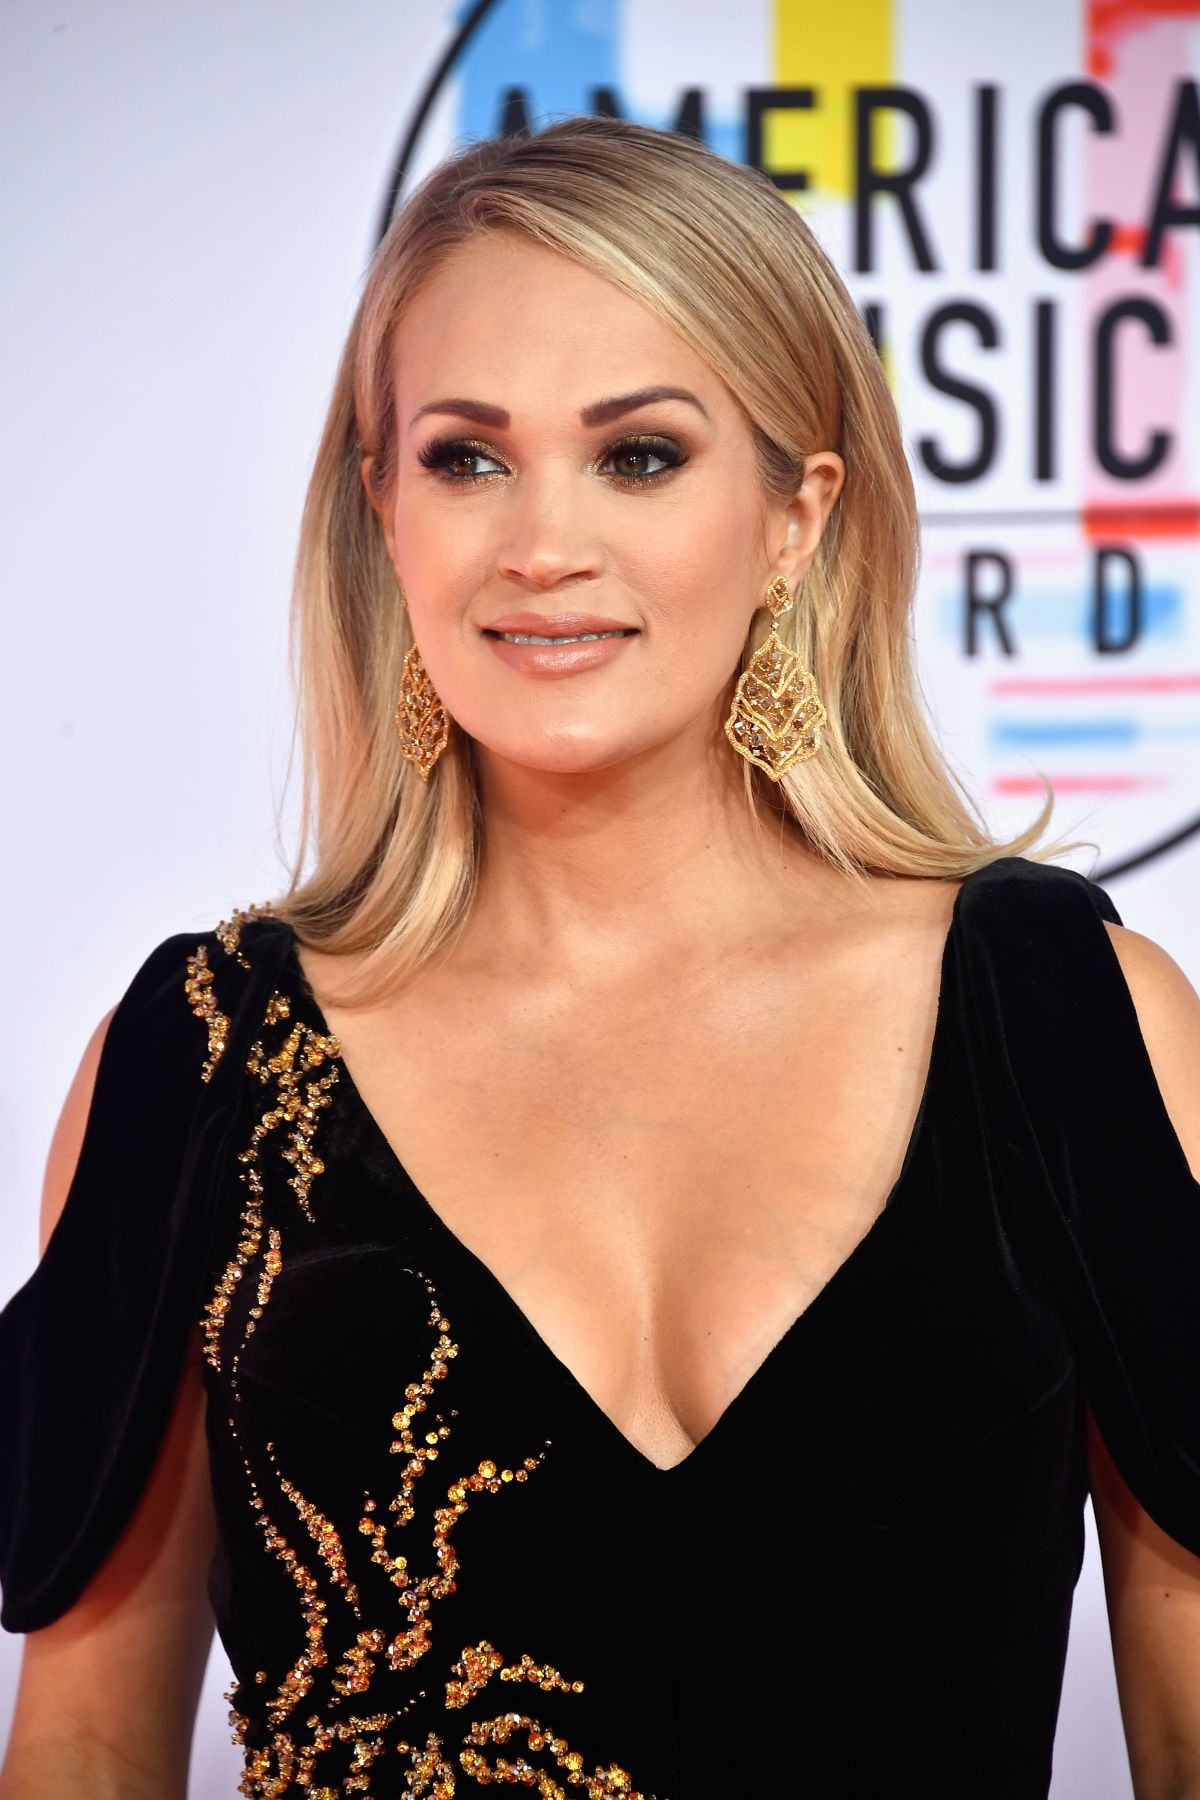 carrie underwood attends 2018 american music awards (ama